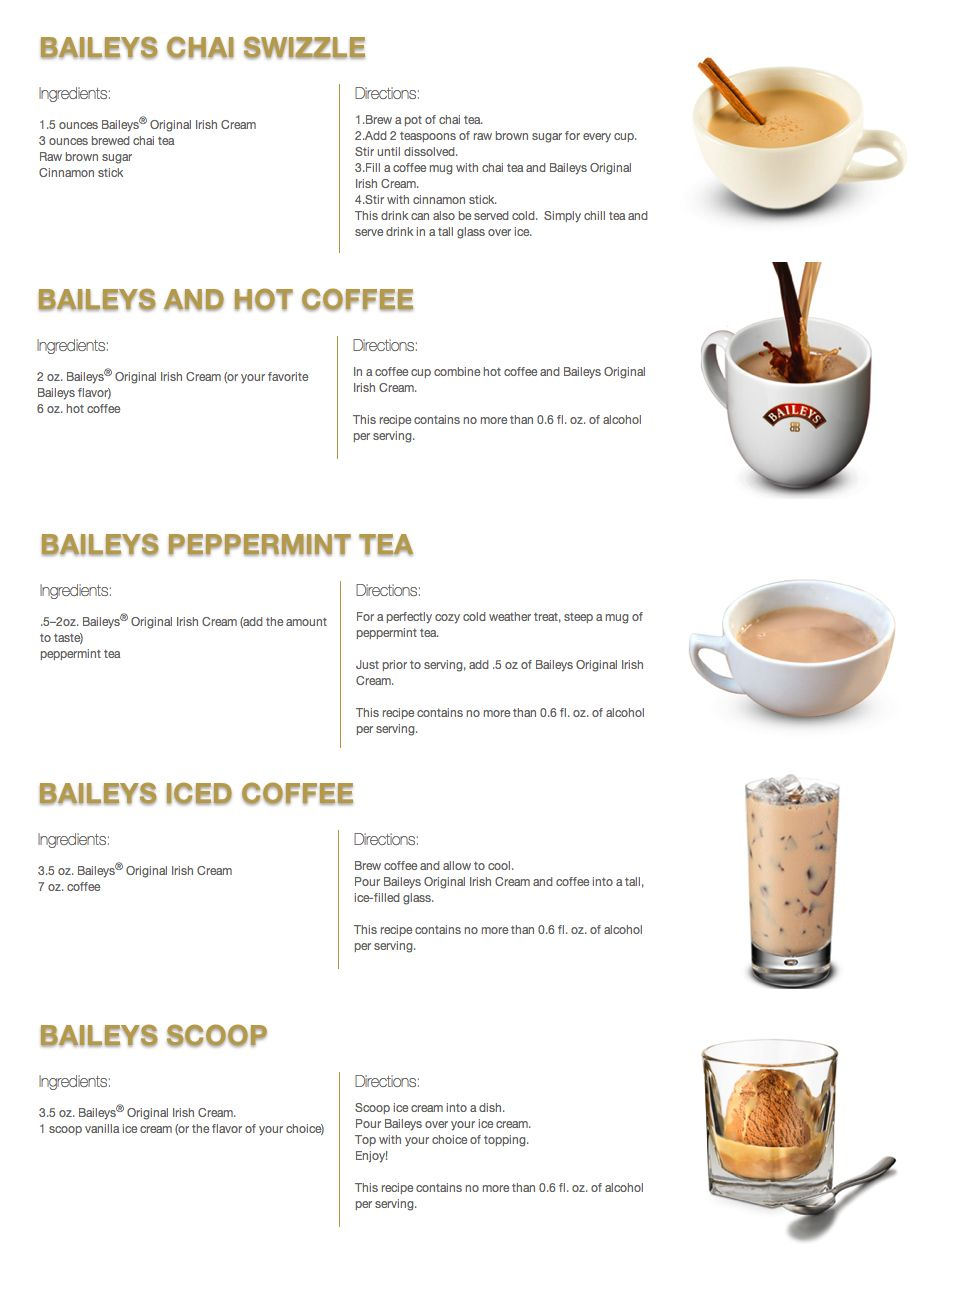 Baileys Added To Some Drinks To Make Them Even Better